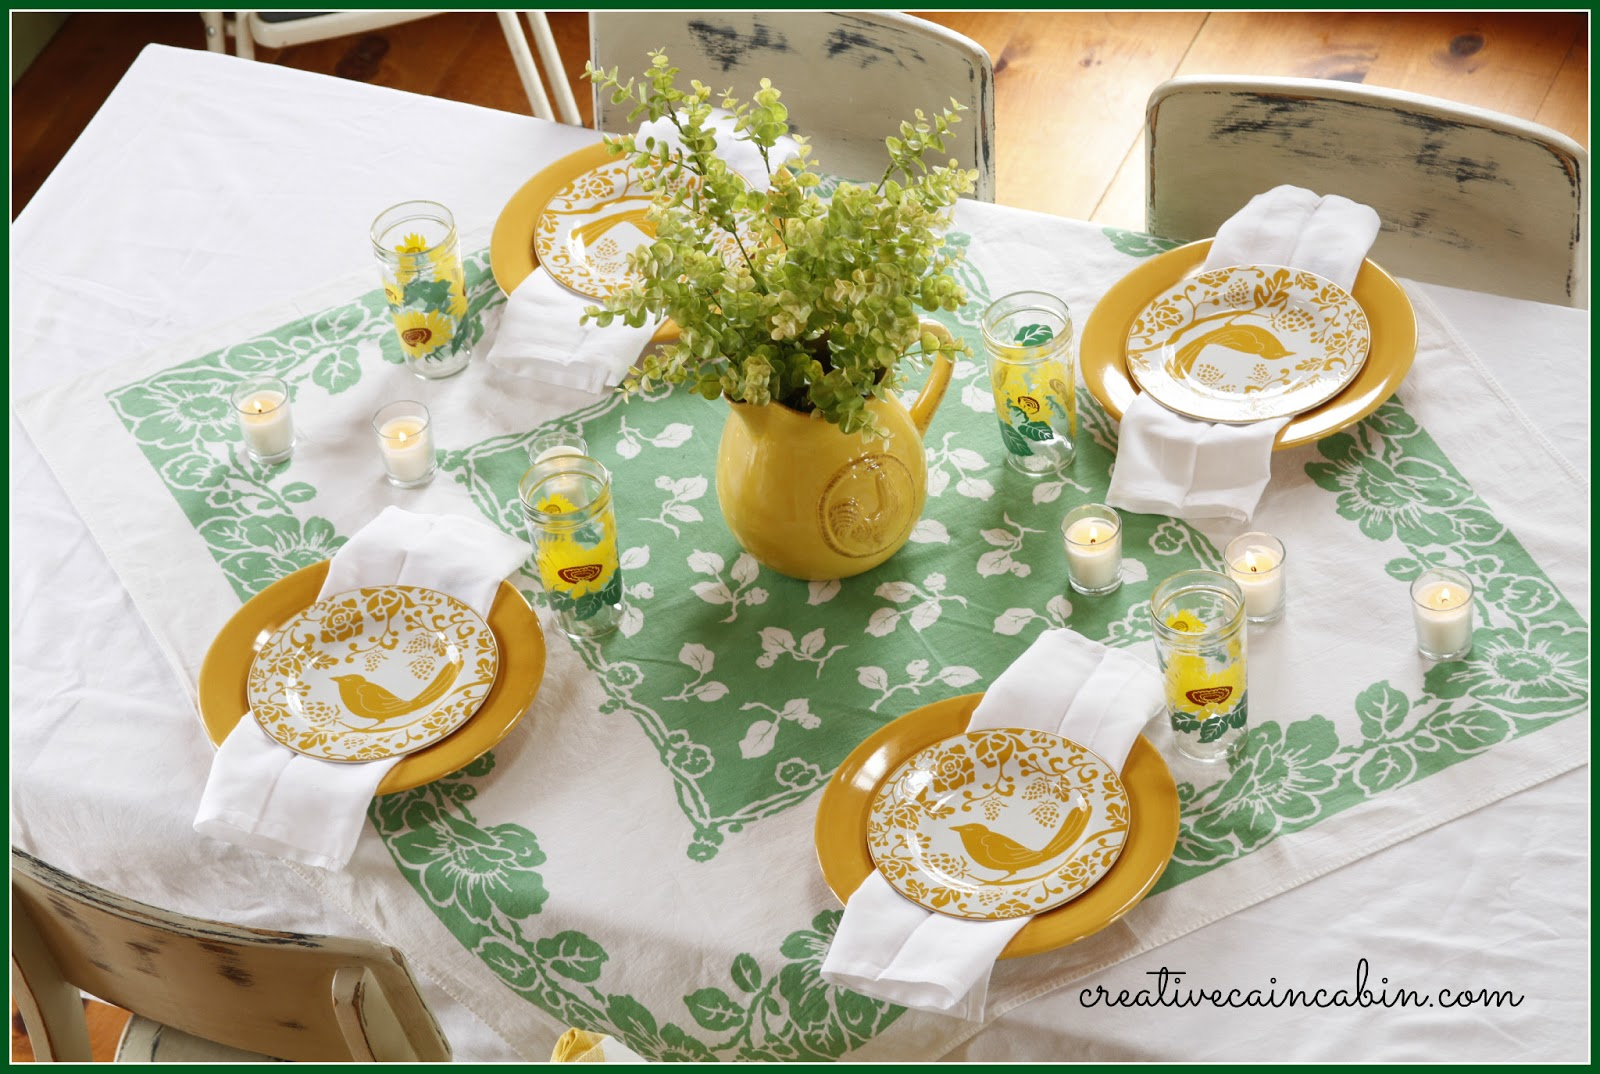 I looked around the house and found all the things that fit into the green and yellow theme I was going for and if I found it in a vintage item ... & St. Patricku0027s Day Table Setting - CREATIVE CAIN CABIN